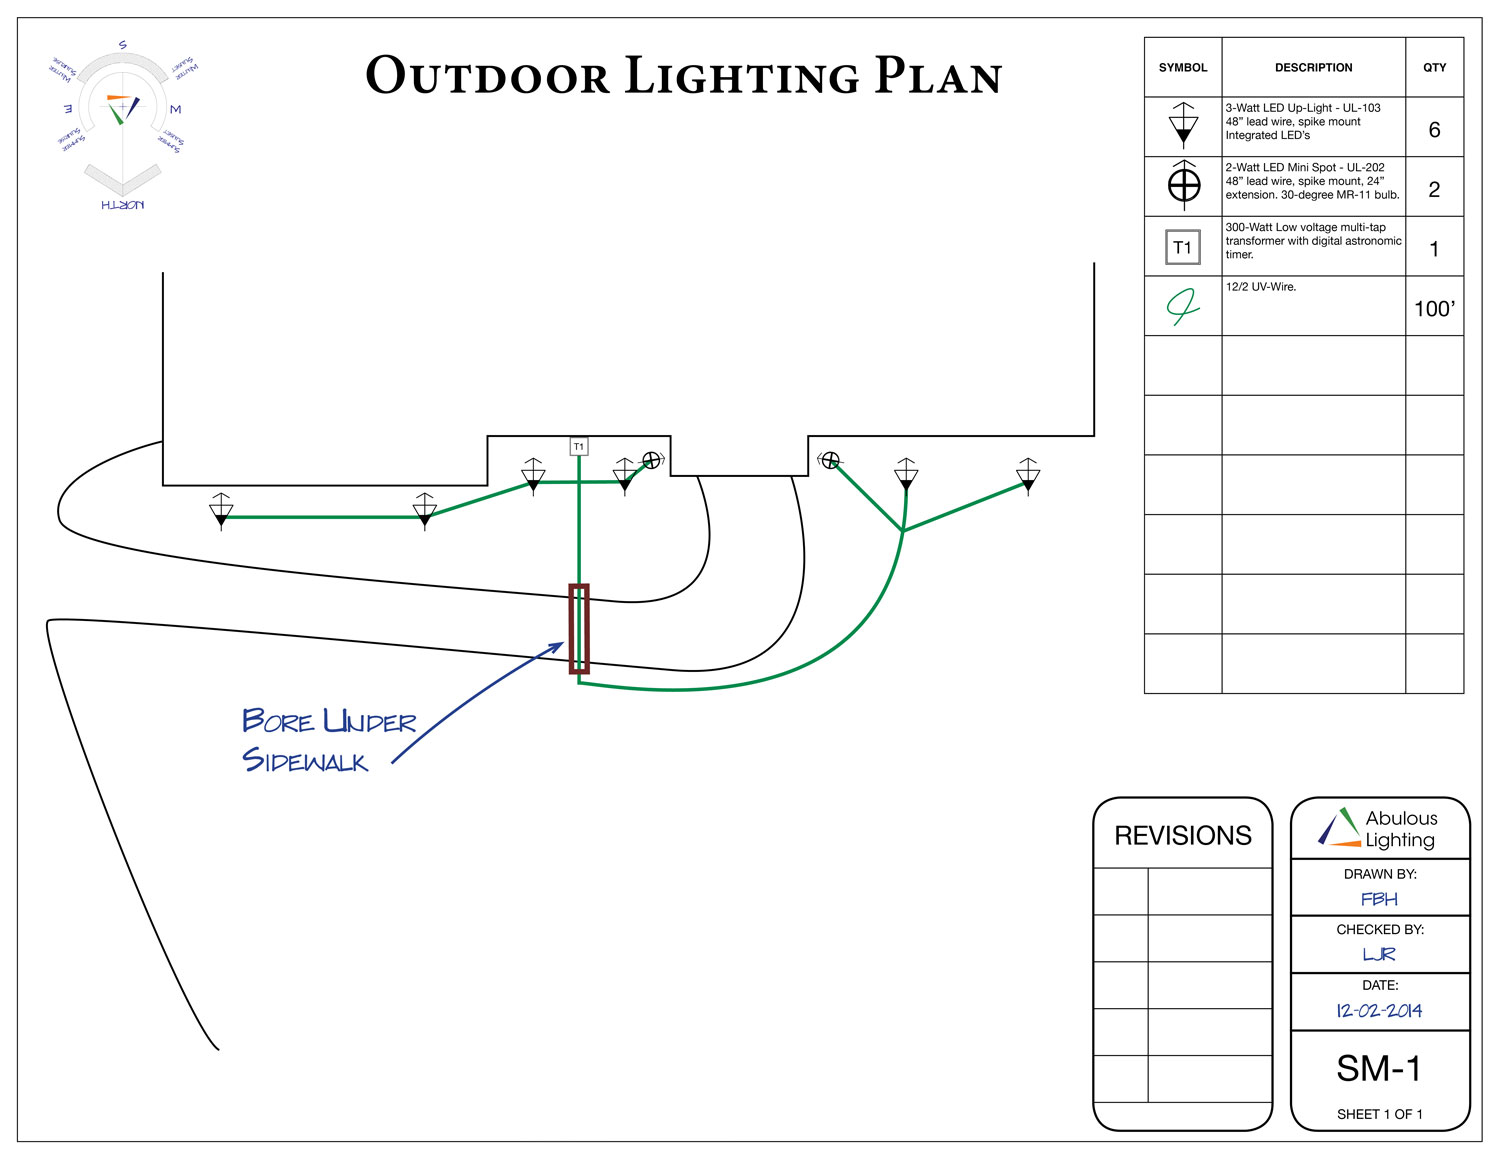 Alliance Outdoor Lighting Wiring Diagram Simple Diagrams For Low Voltage Path Lights Led Landscape Street Light